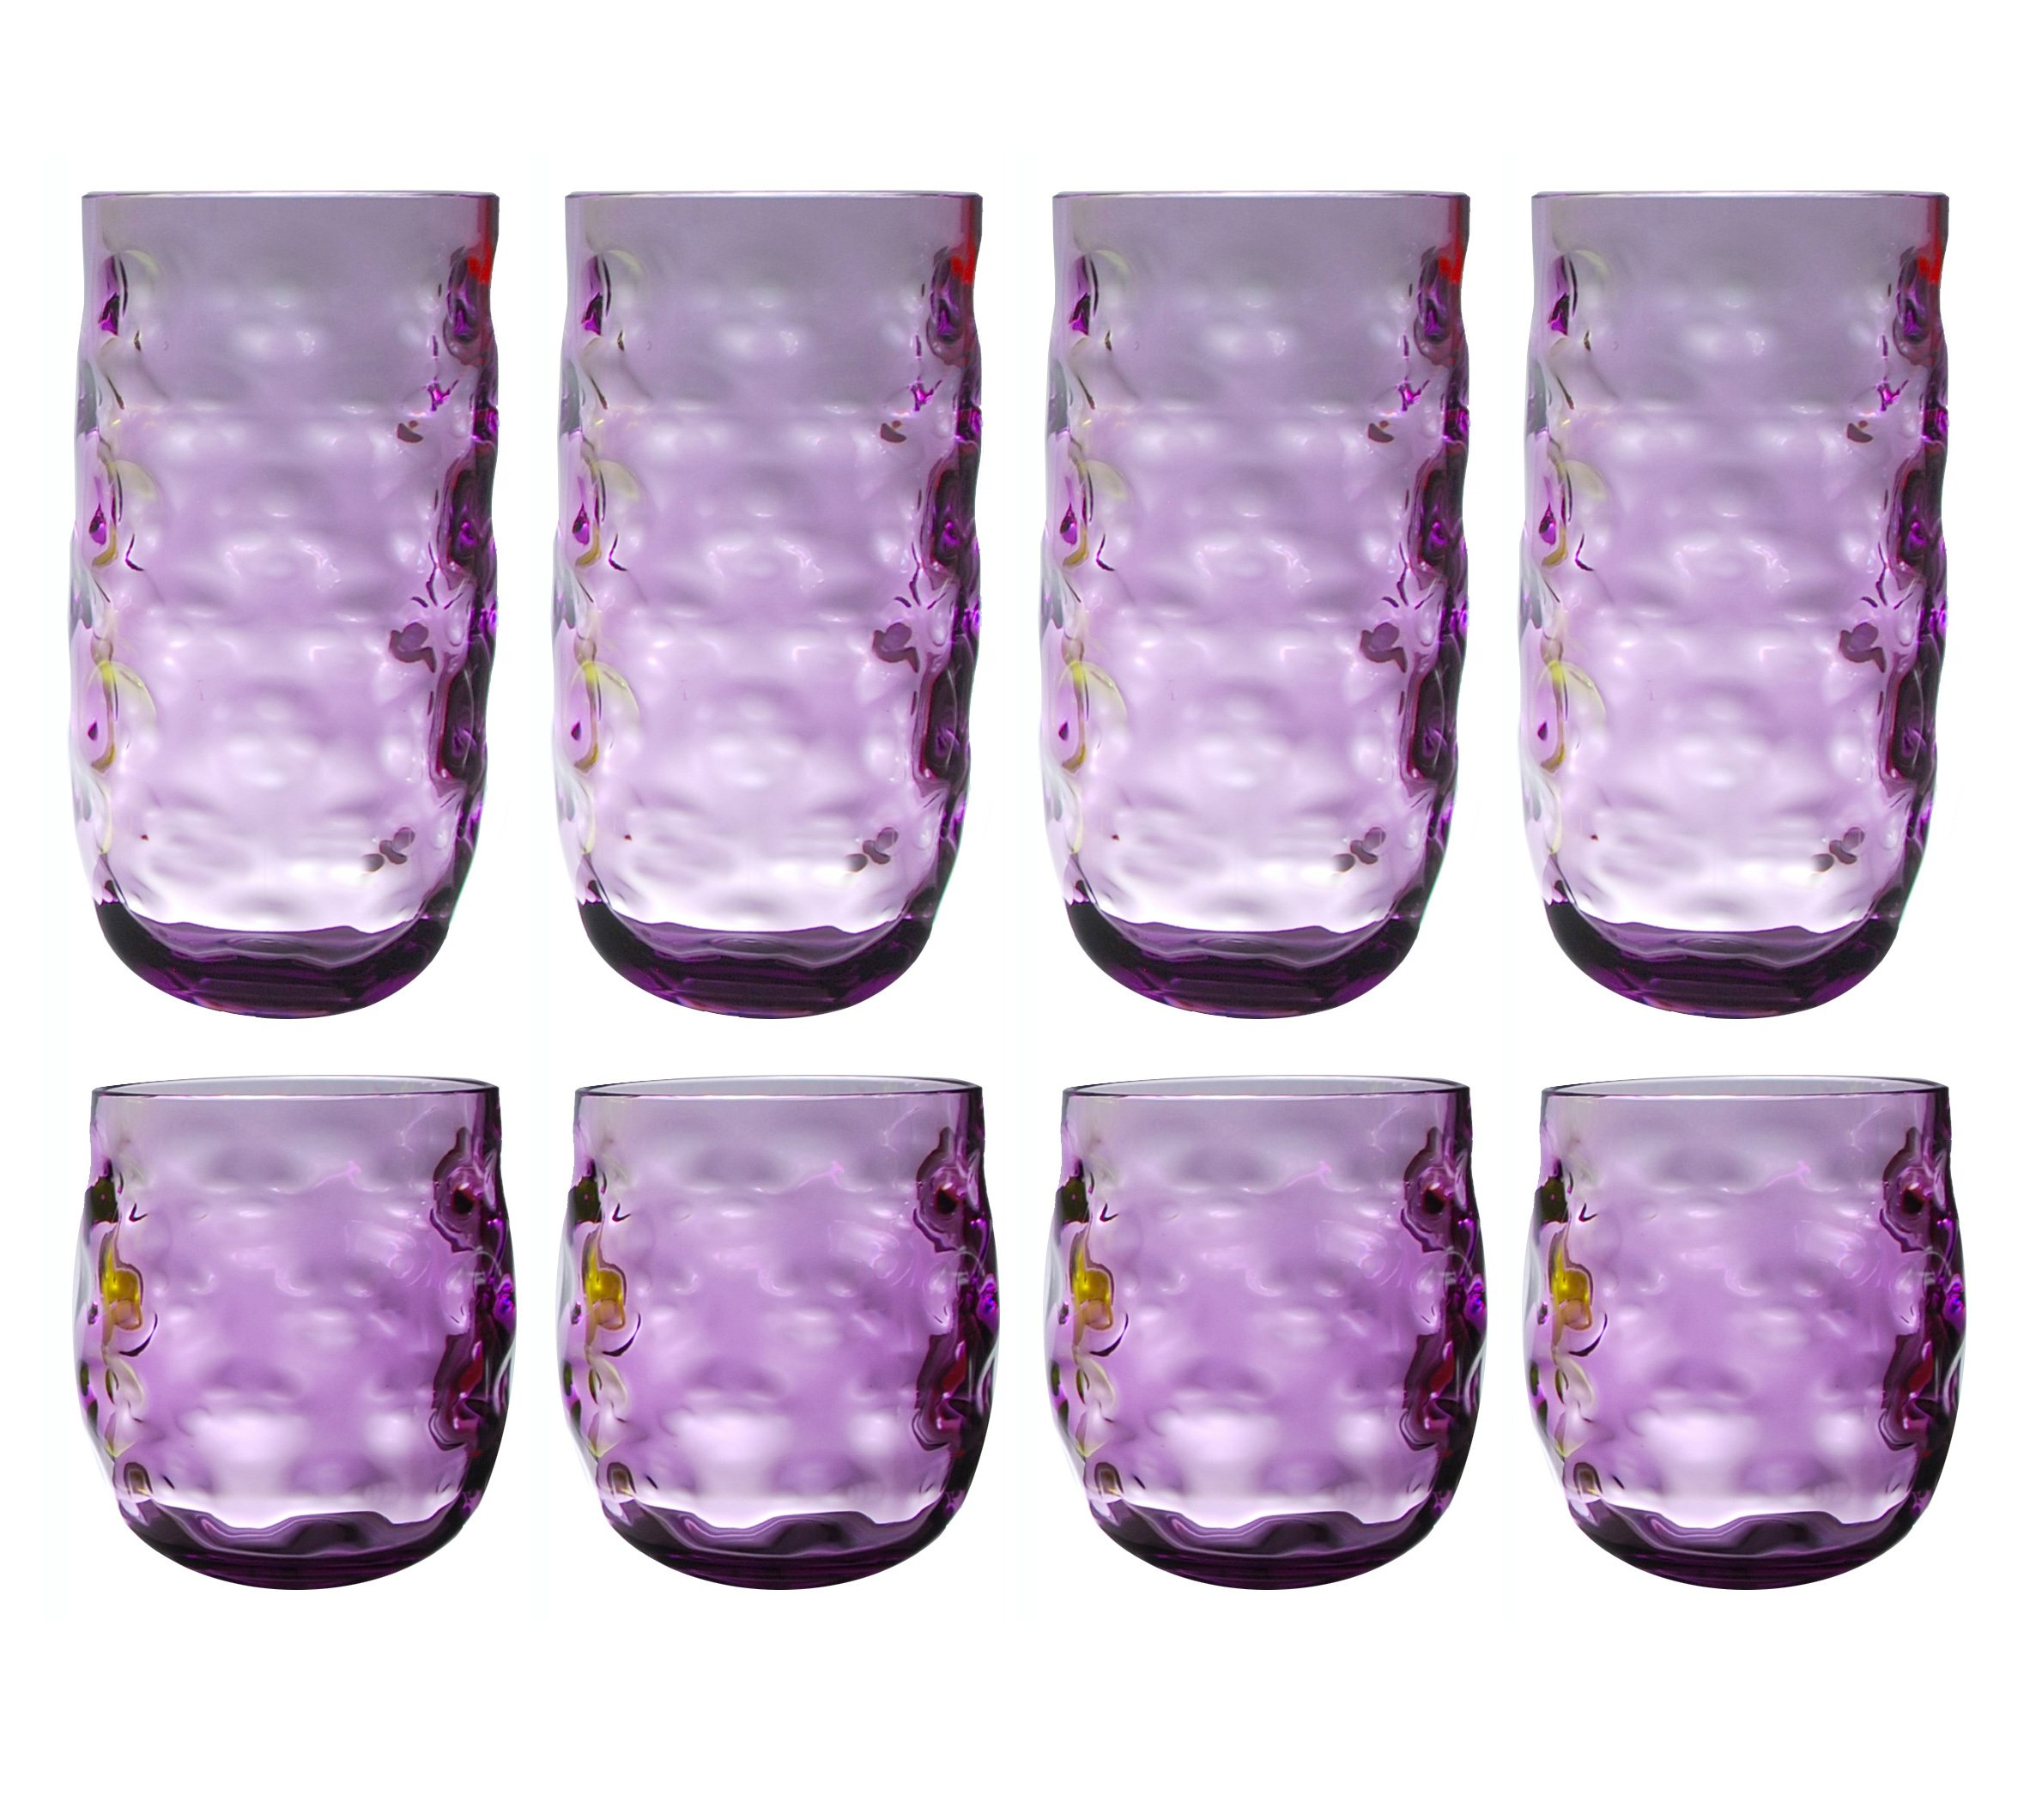 QG Clear Colorful Acrylic Plastic 14 & 23 oz. Cup Drinking Glass Tumbler Set of 8 Purple